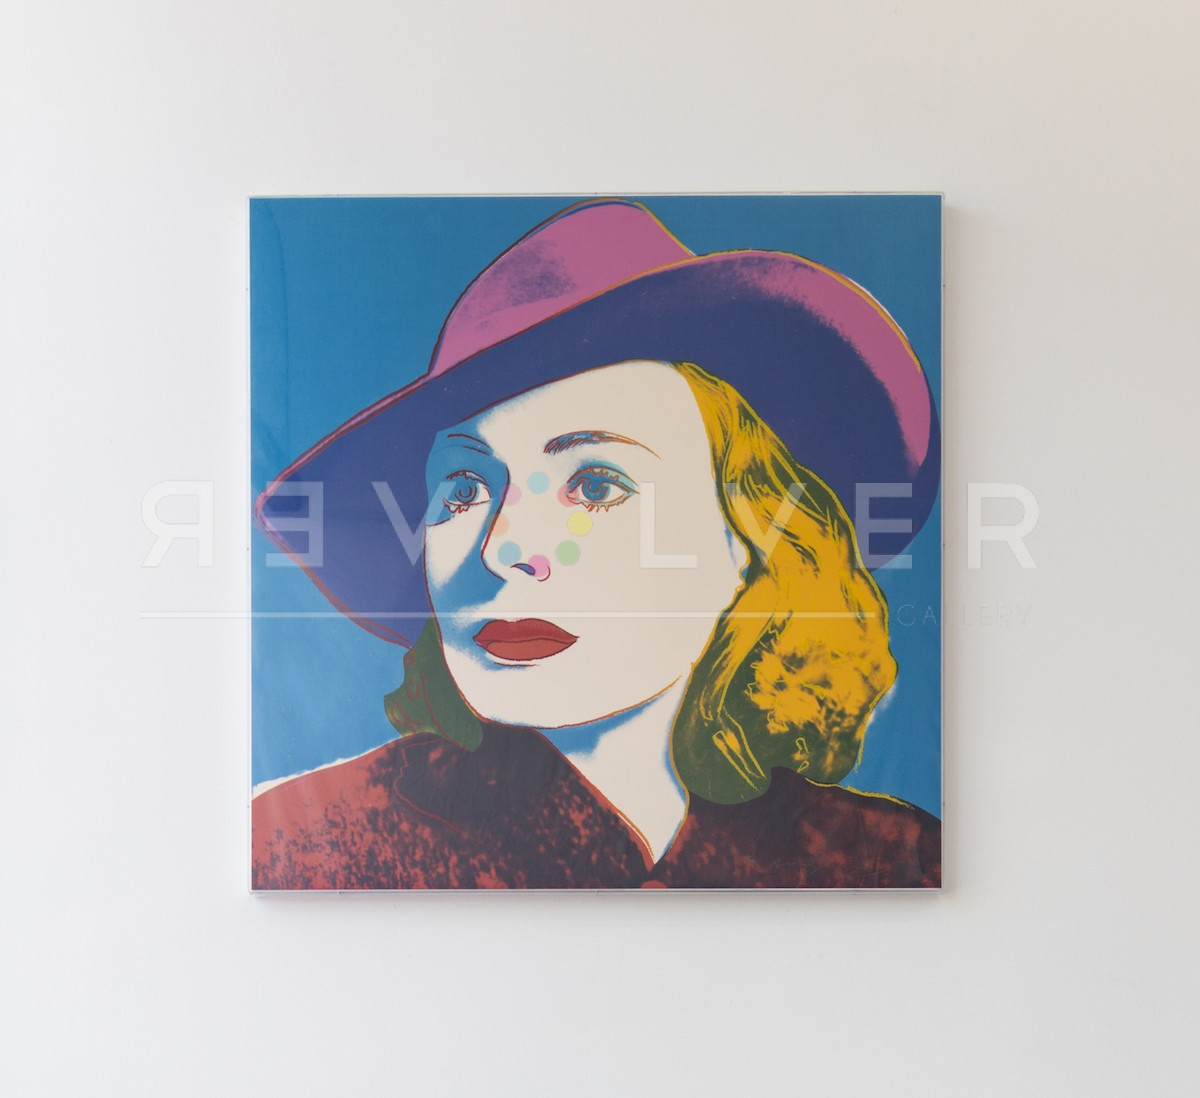 Andy Warhol Ingrid Bergman 315 screenprint framed and hanging on the wall.